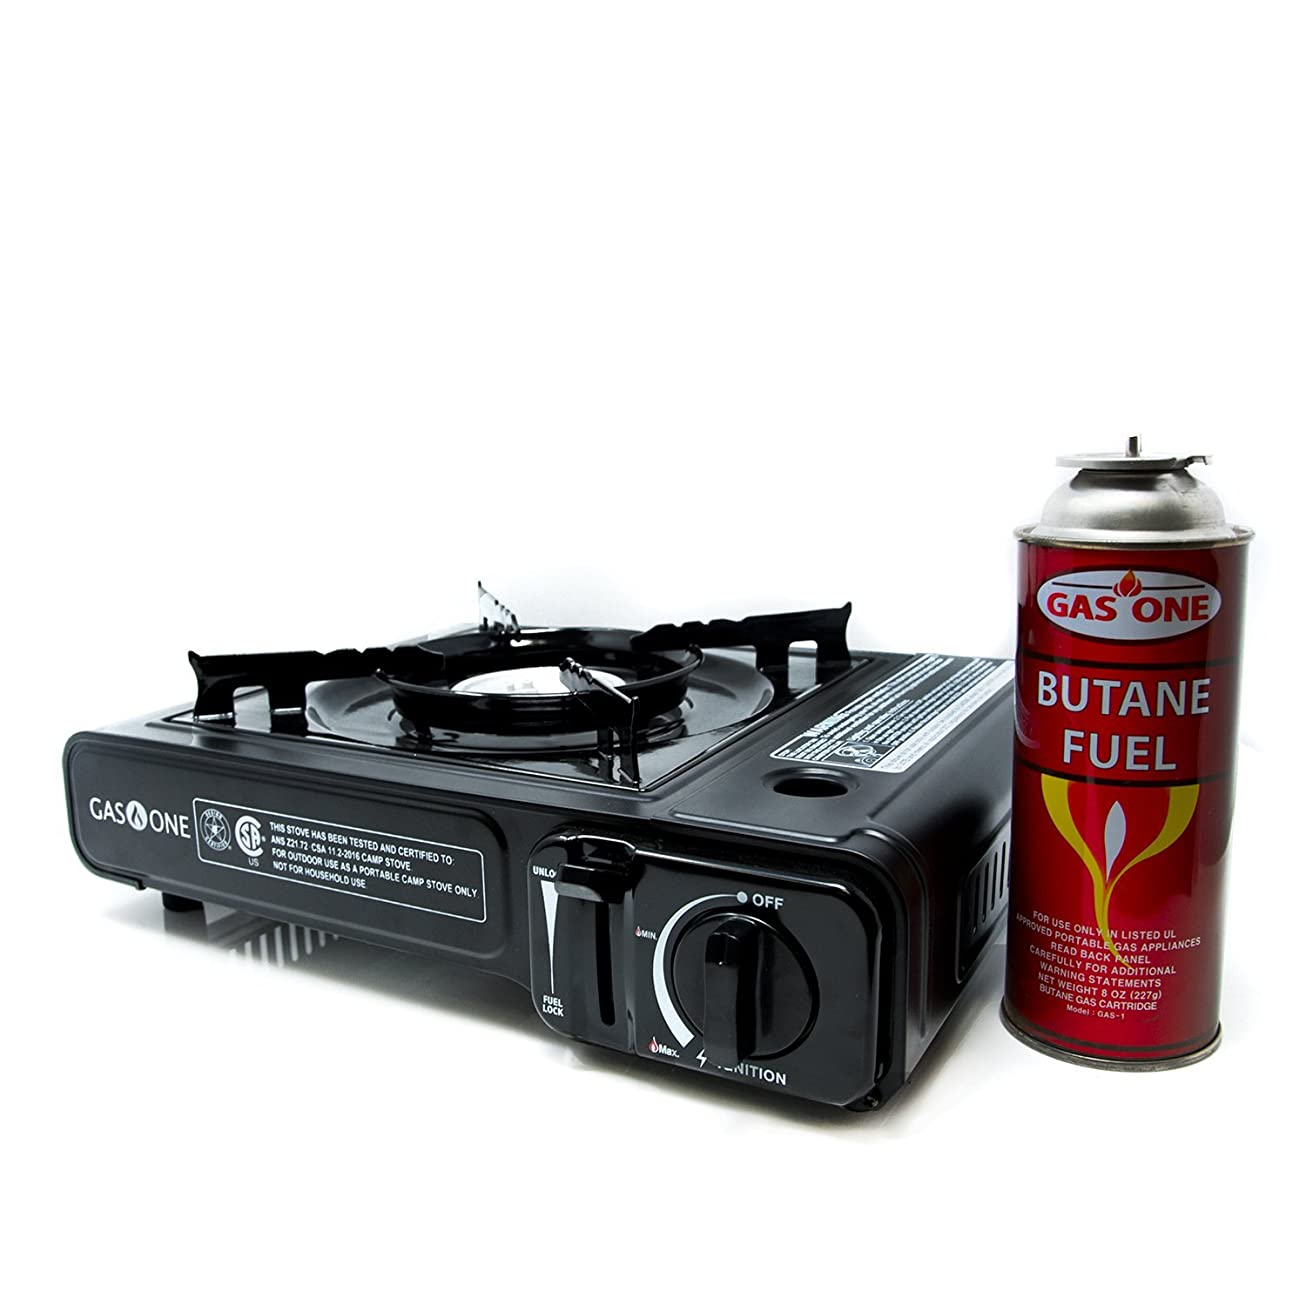 Gas ONE GS-3000 Portable Gas Stove with Carrying Case, 9,000 BTU, CSA Approved, Black tctqcajffkjs0